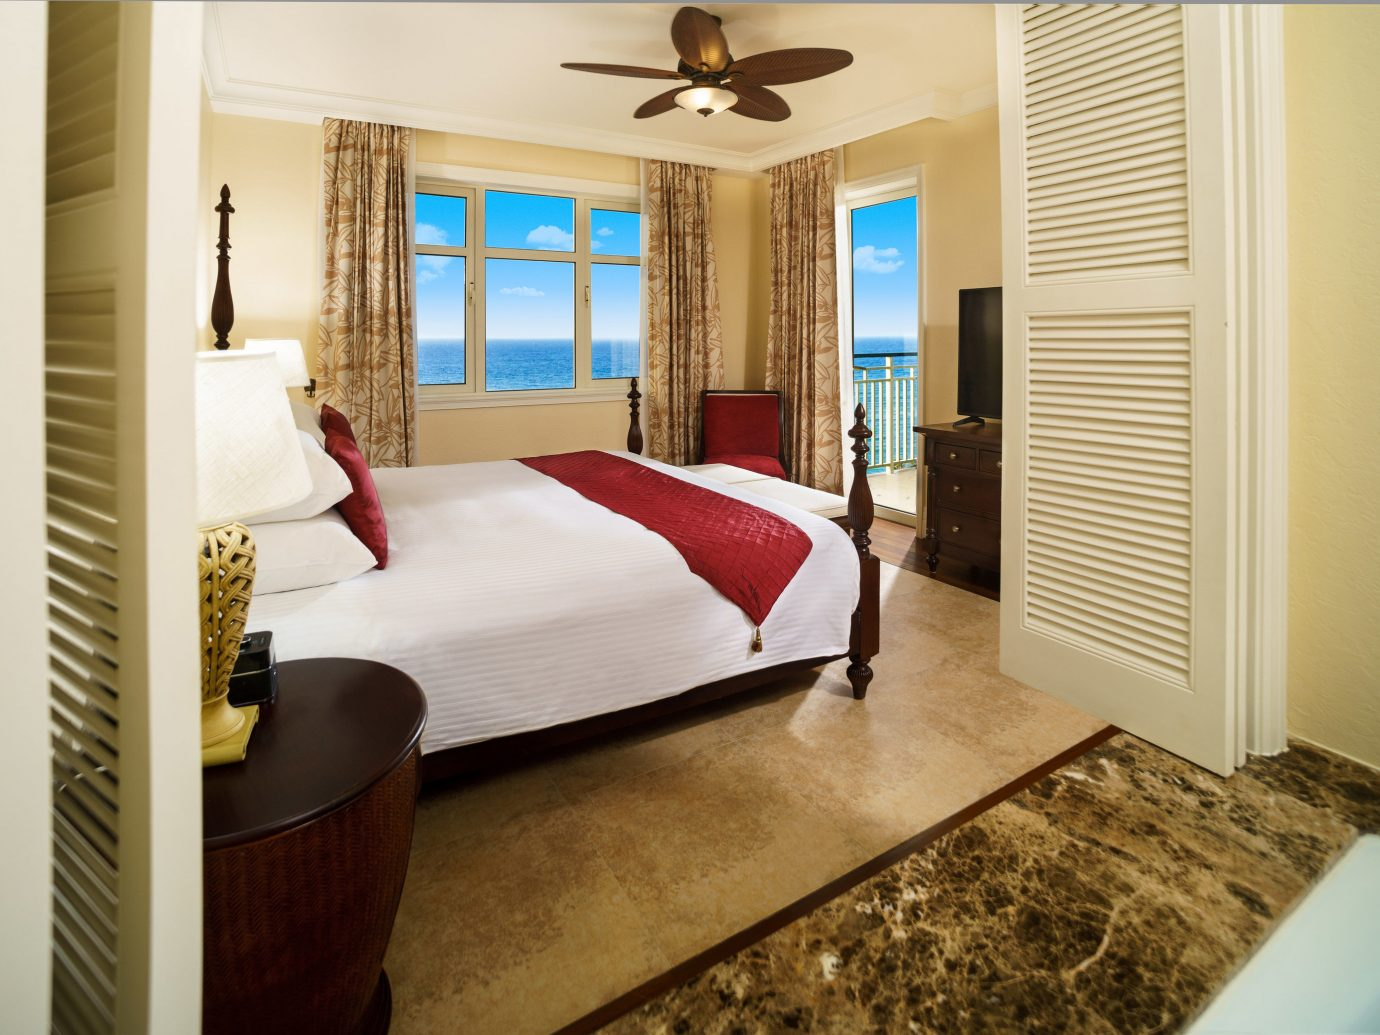 All-Inclusive Resorts caribbean Family Travel Hotels indoor wall floor window room property Bedroom interior design Suite real estate estate ceiling home wood flooring wood hardwood flooring door furniture